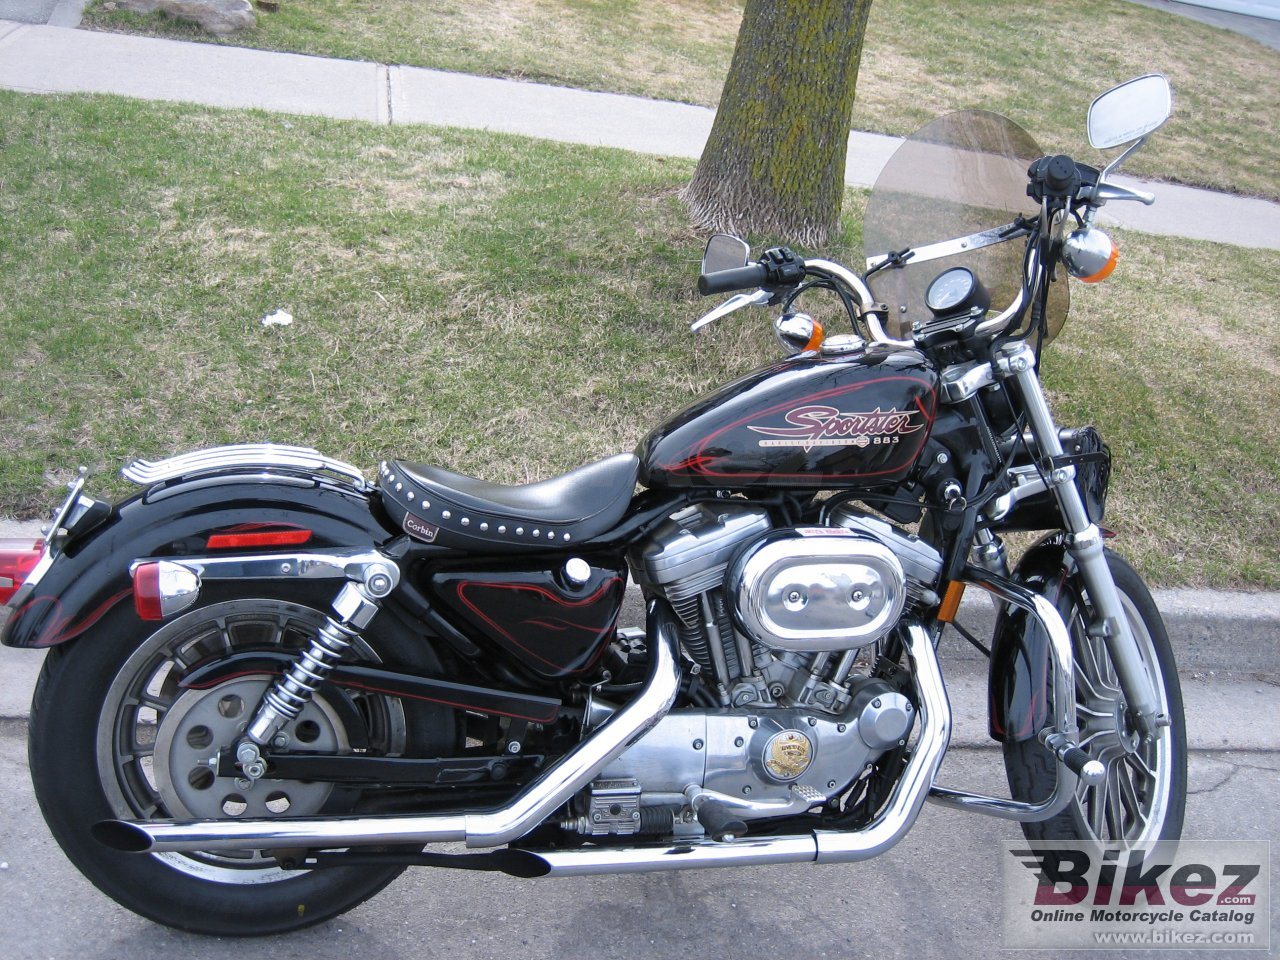 Big  883 sportster hugger picture and wallpaper from Bikez.com